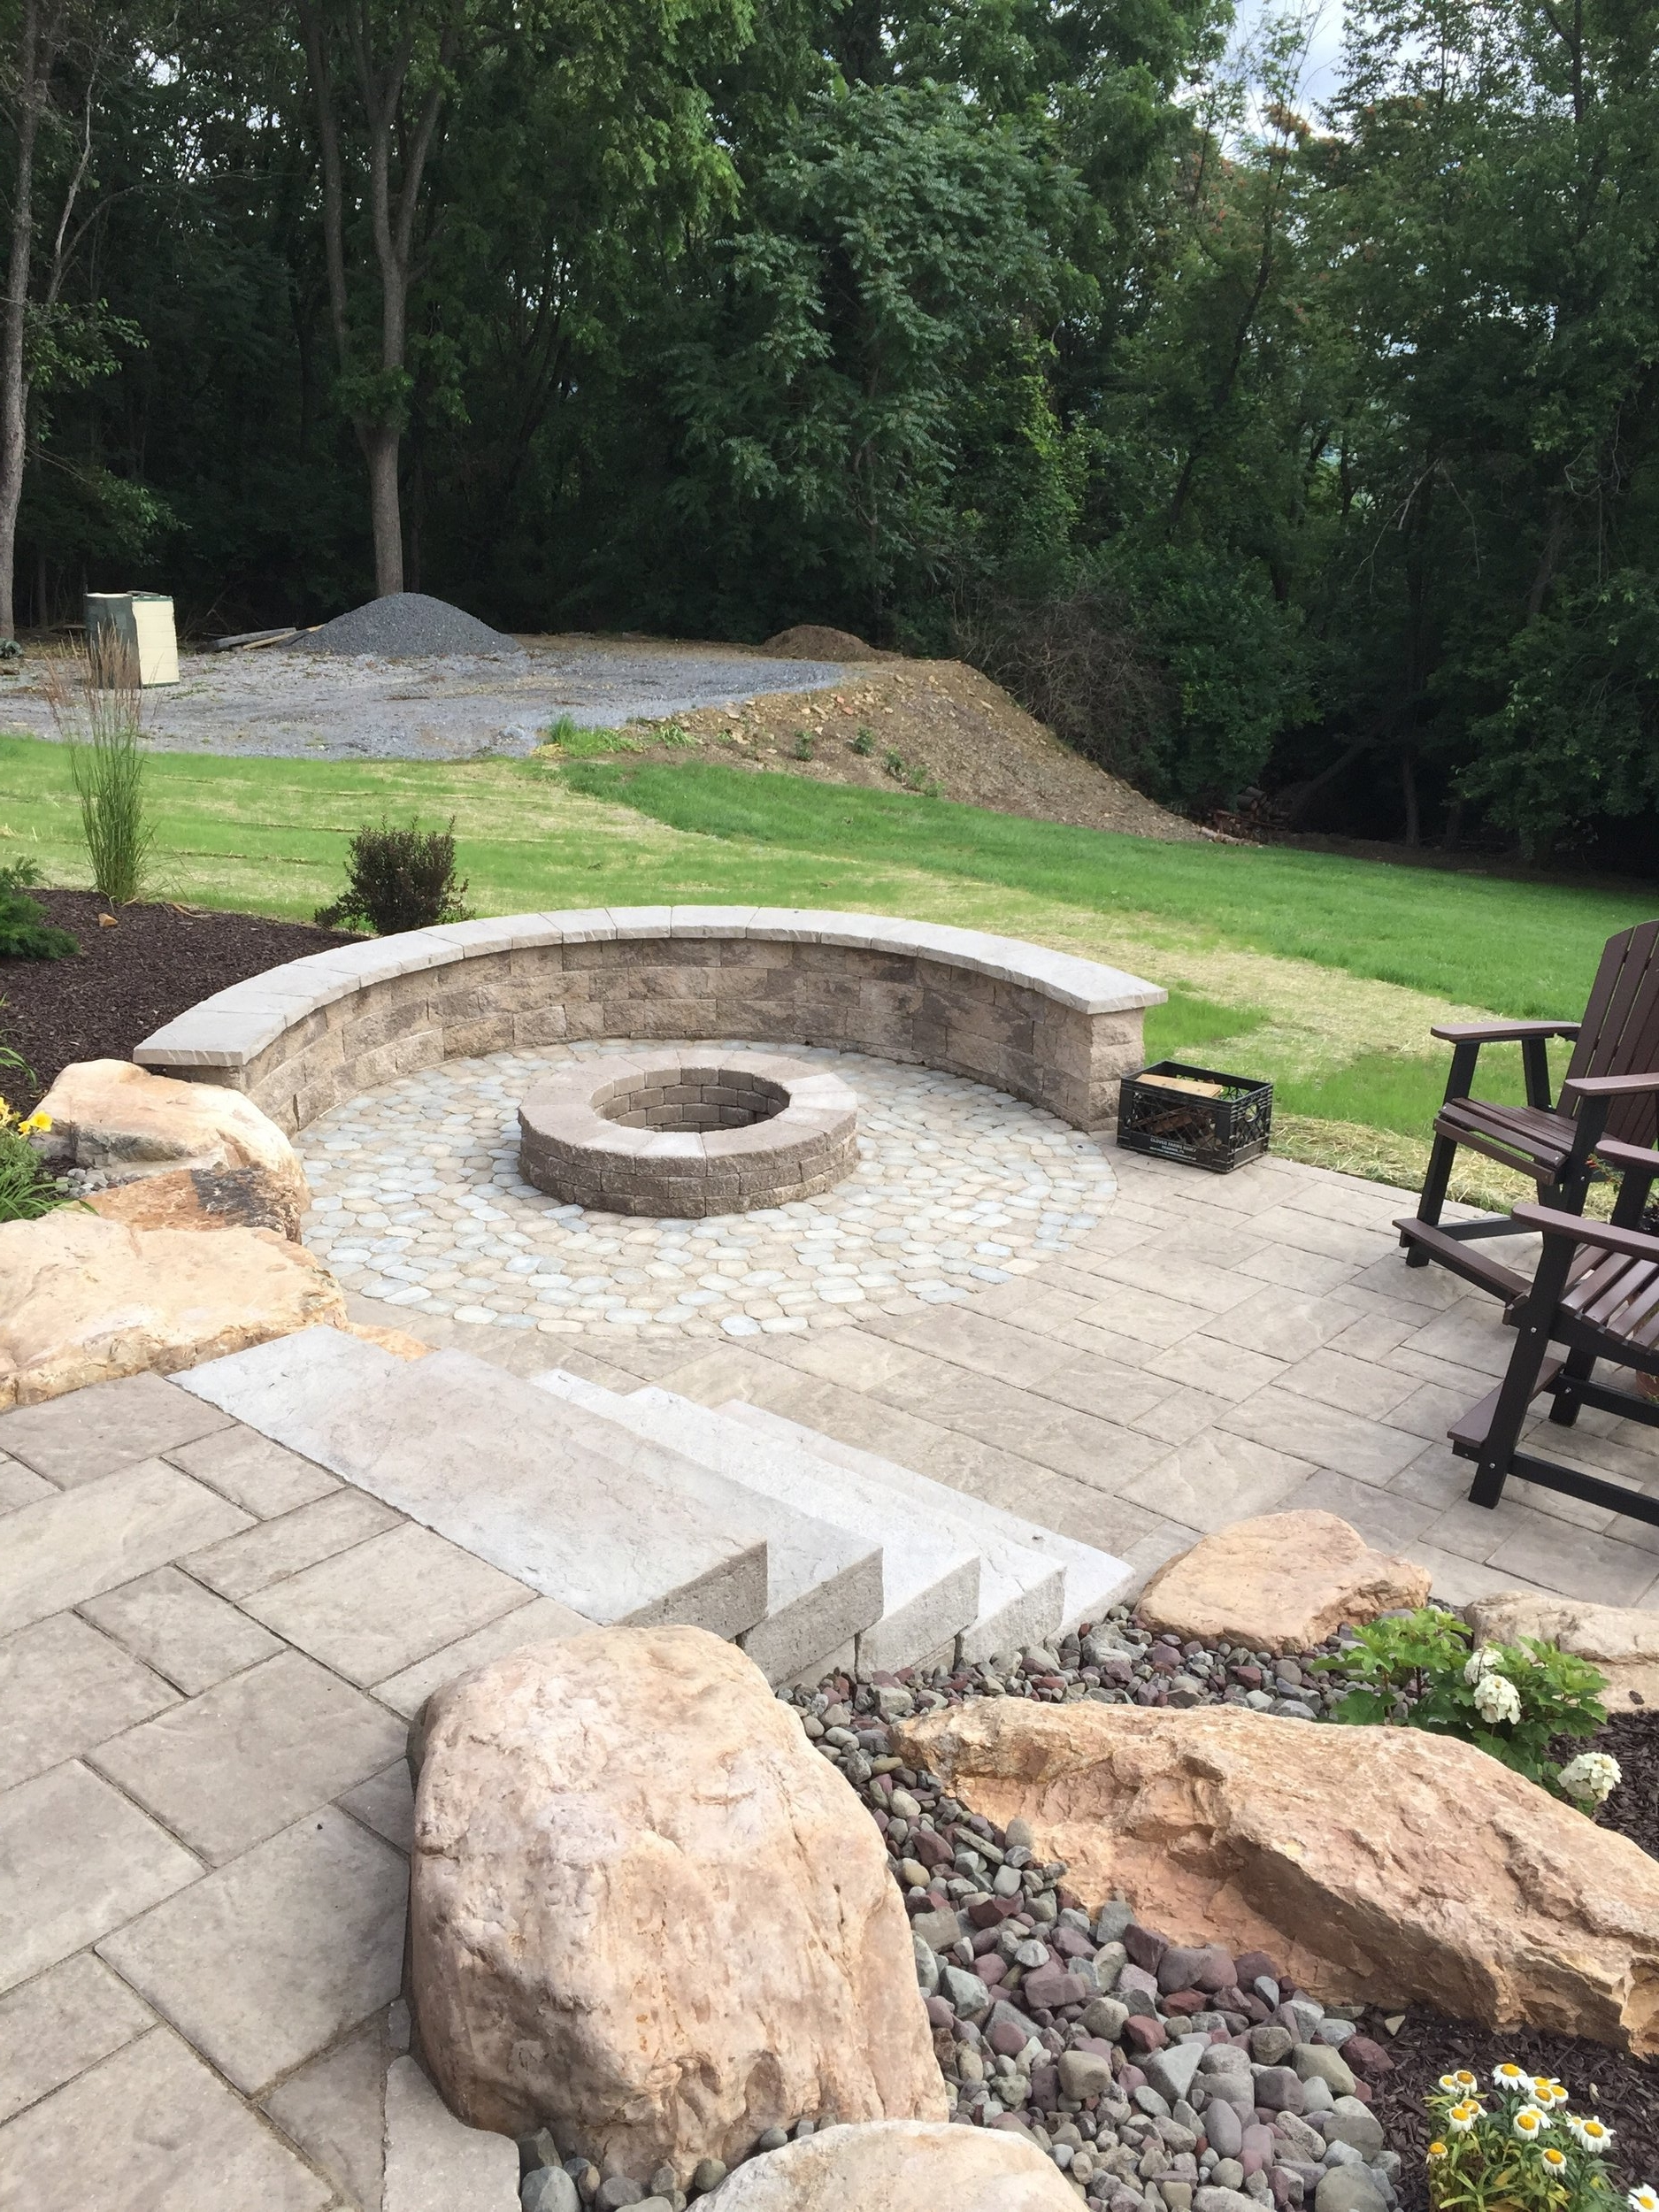 Top landscape contractor with stunning landscape patio ideas in Allentown, PA